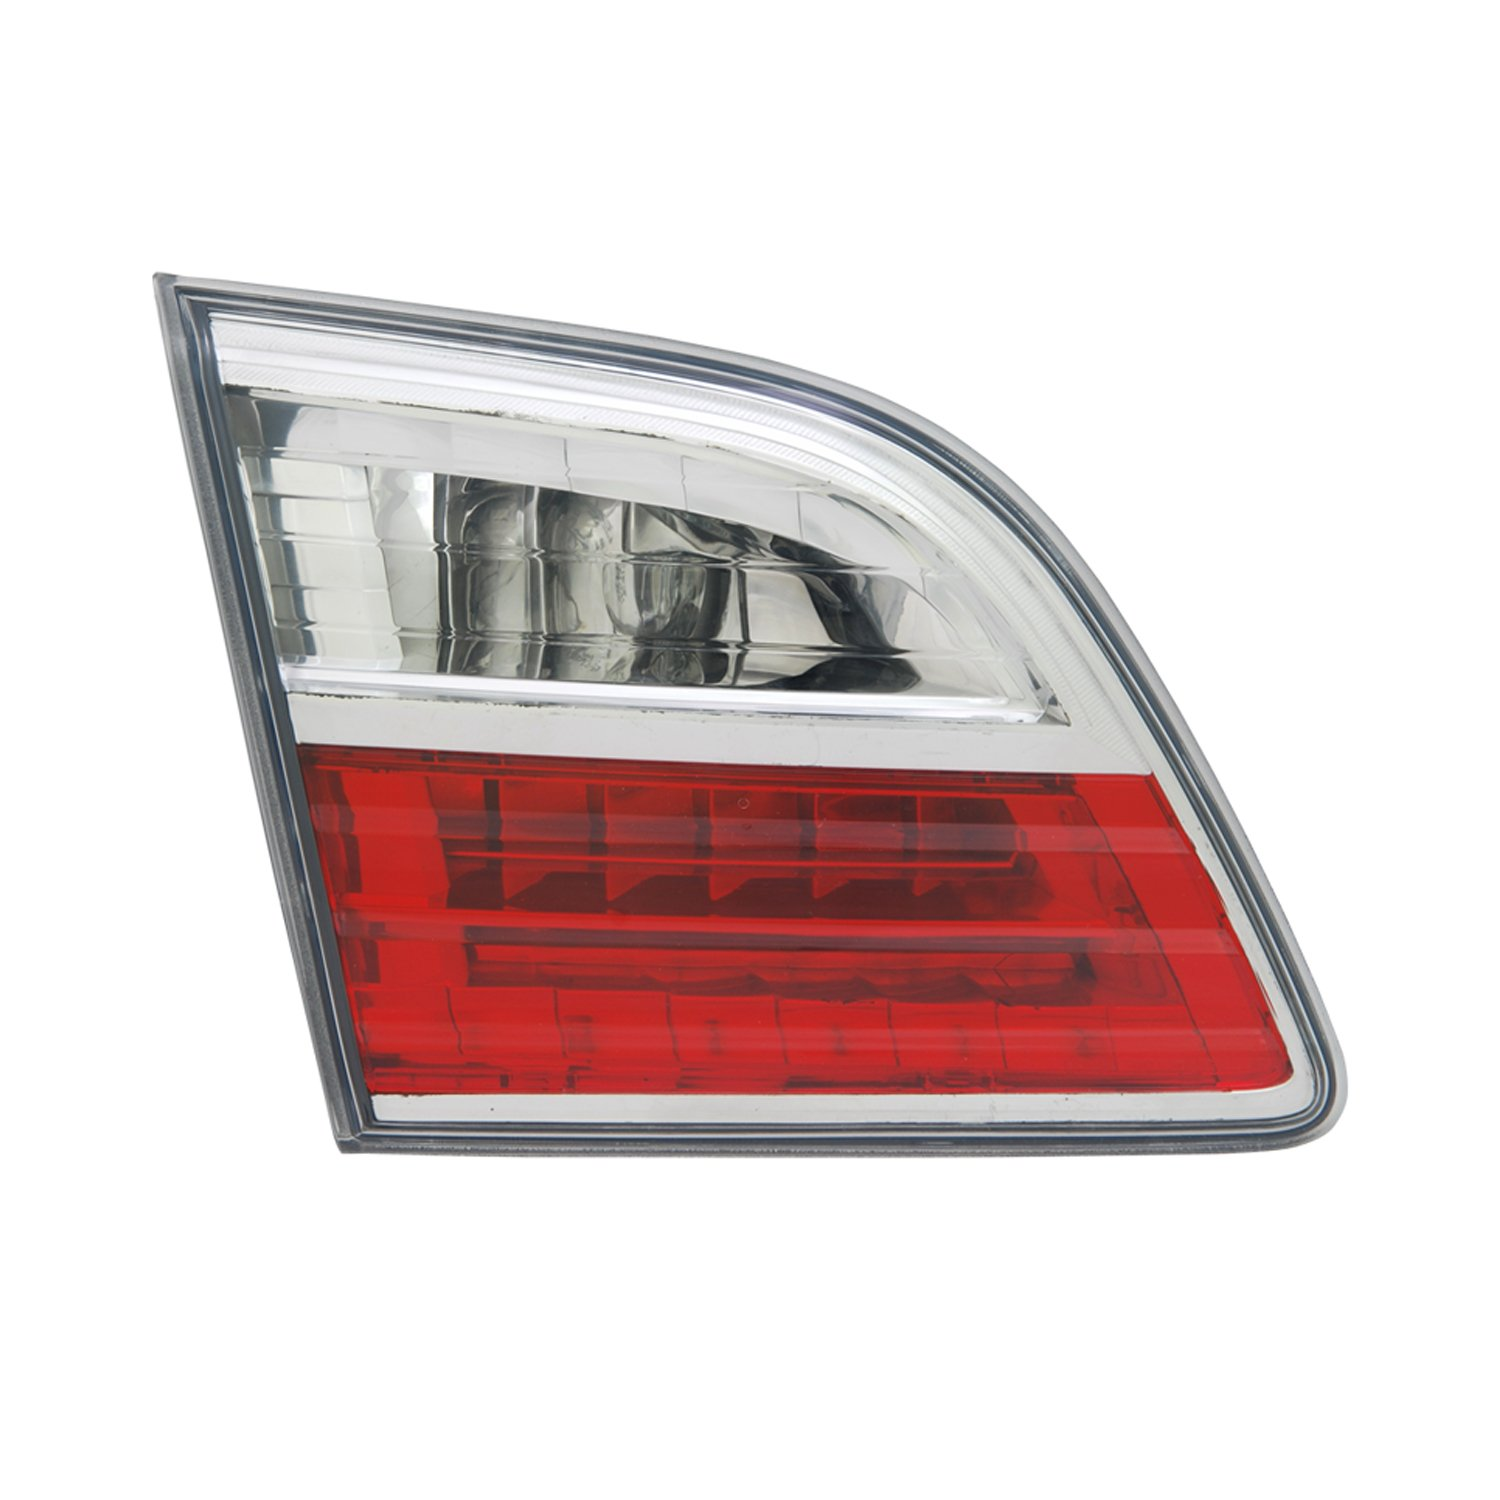 OE Replacement Tail Light Assembly MAZDA CX9 2010-2012 Partslink MA2802106 Multiple Manufacturers MA2802106N